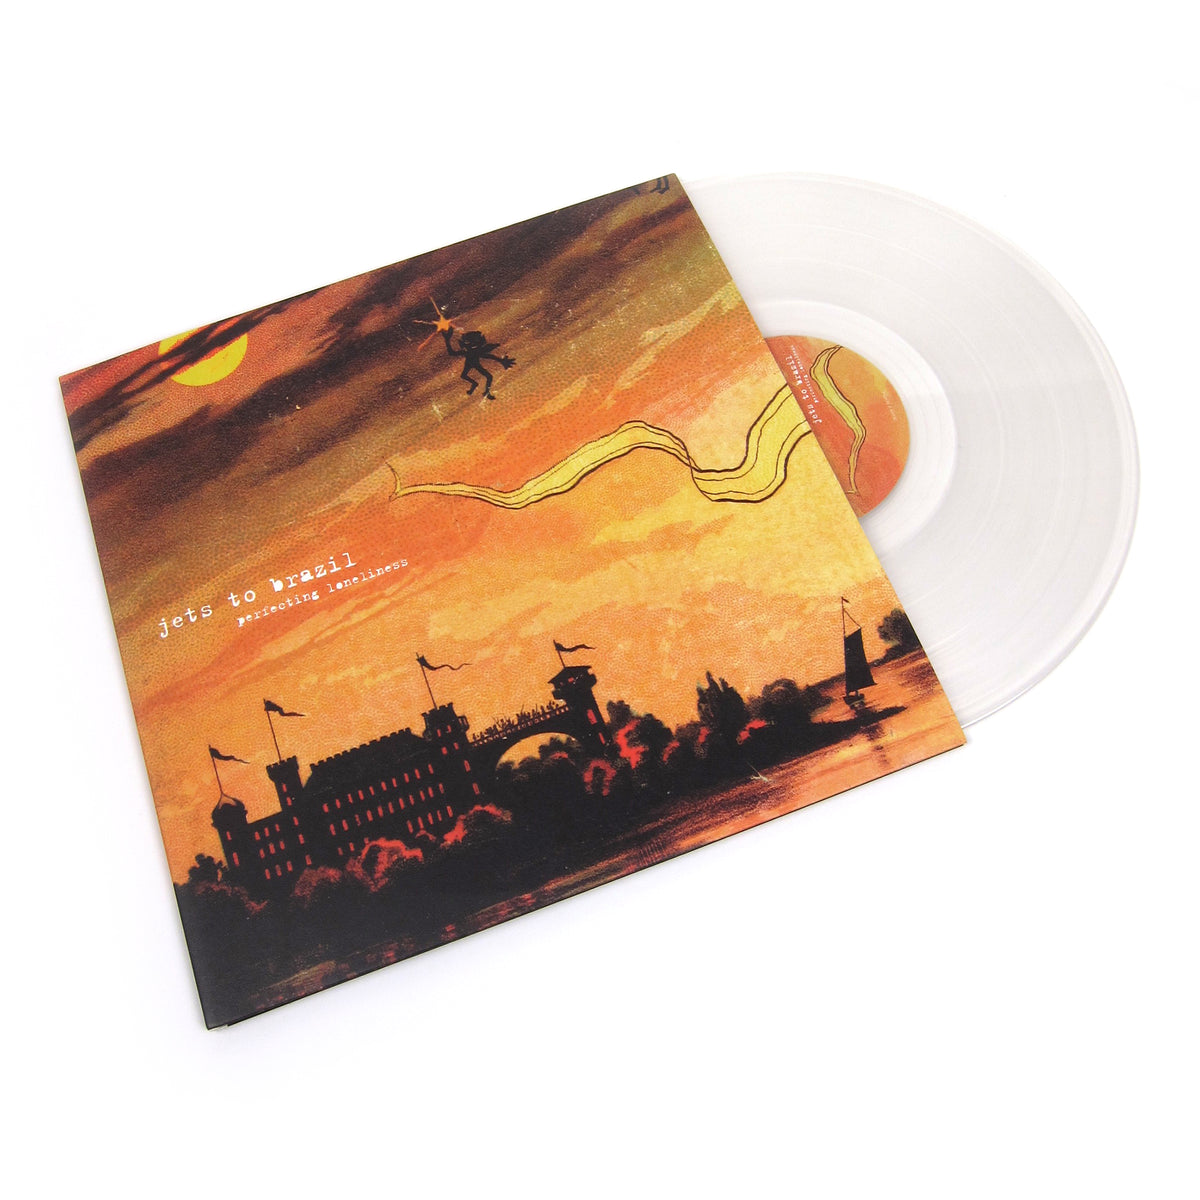 Jets To Brazil: Perfecting Loneliness (Colored Vinyl) Vinyl 2LP